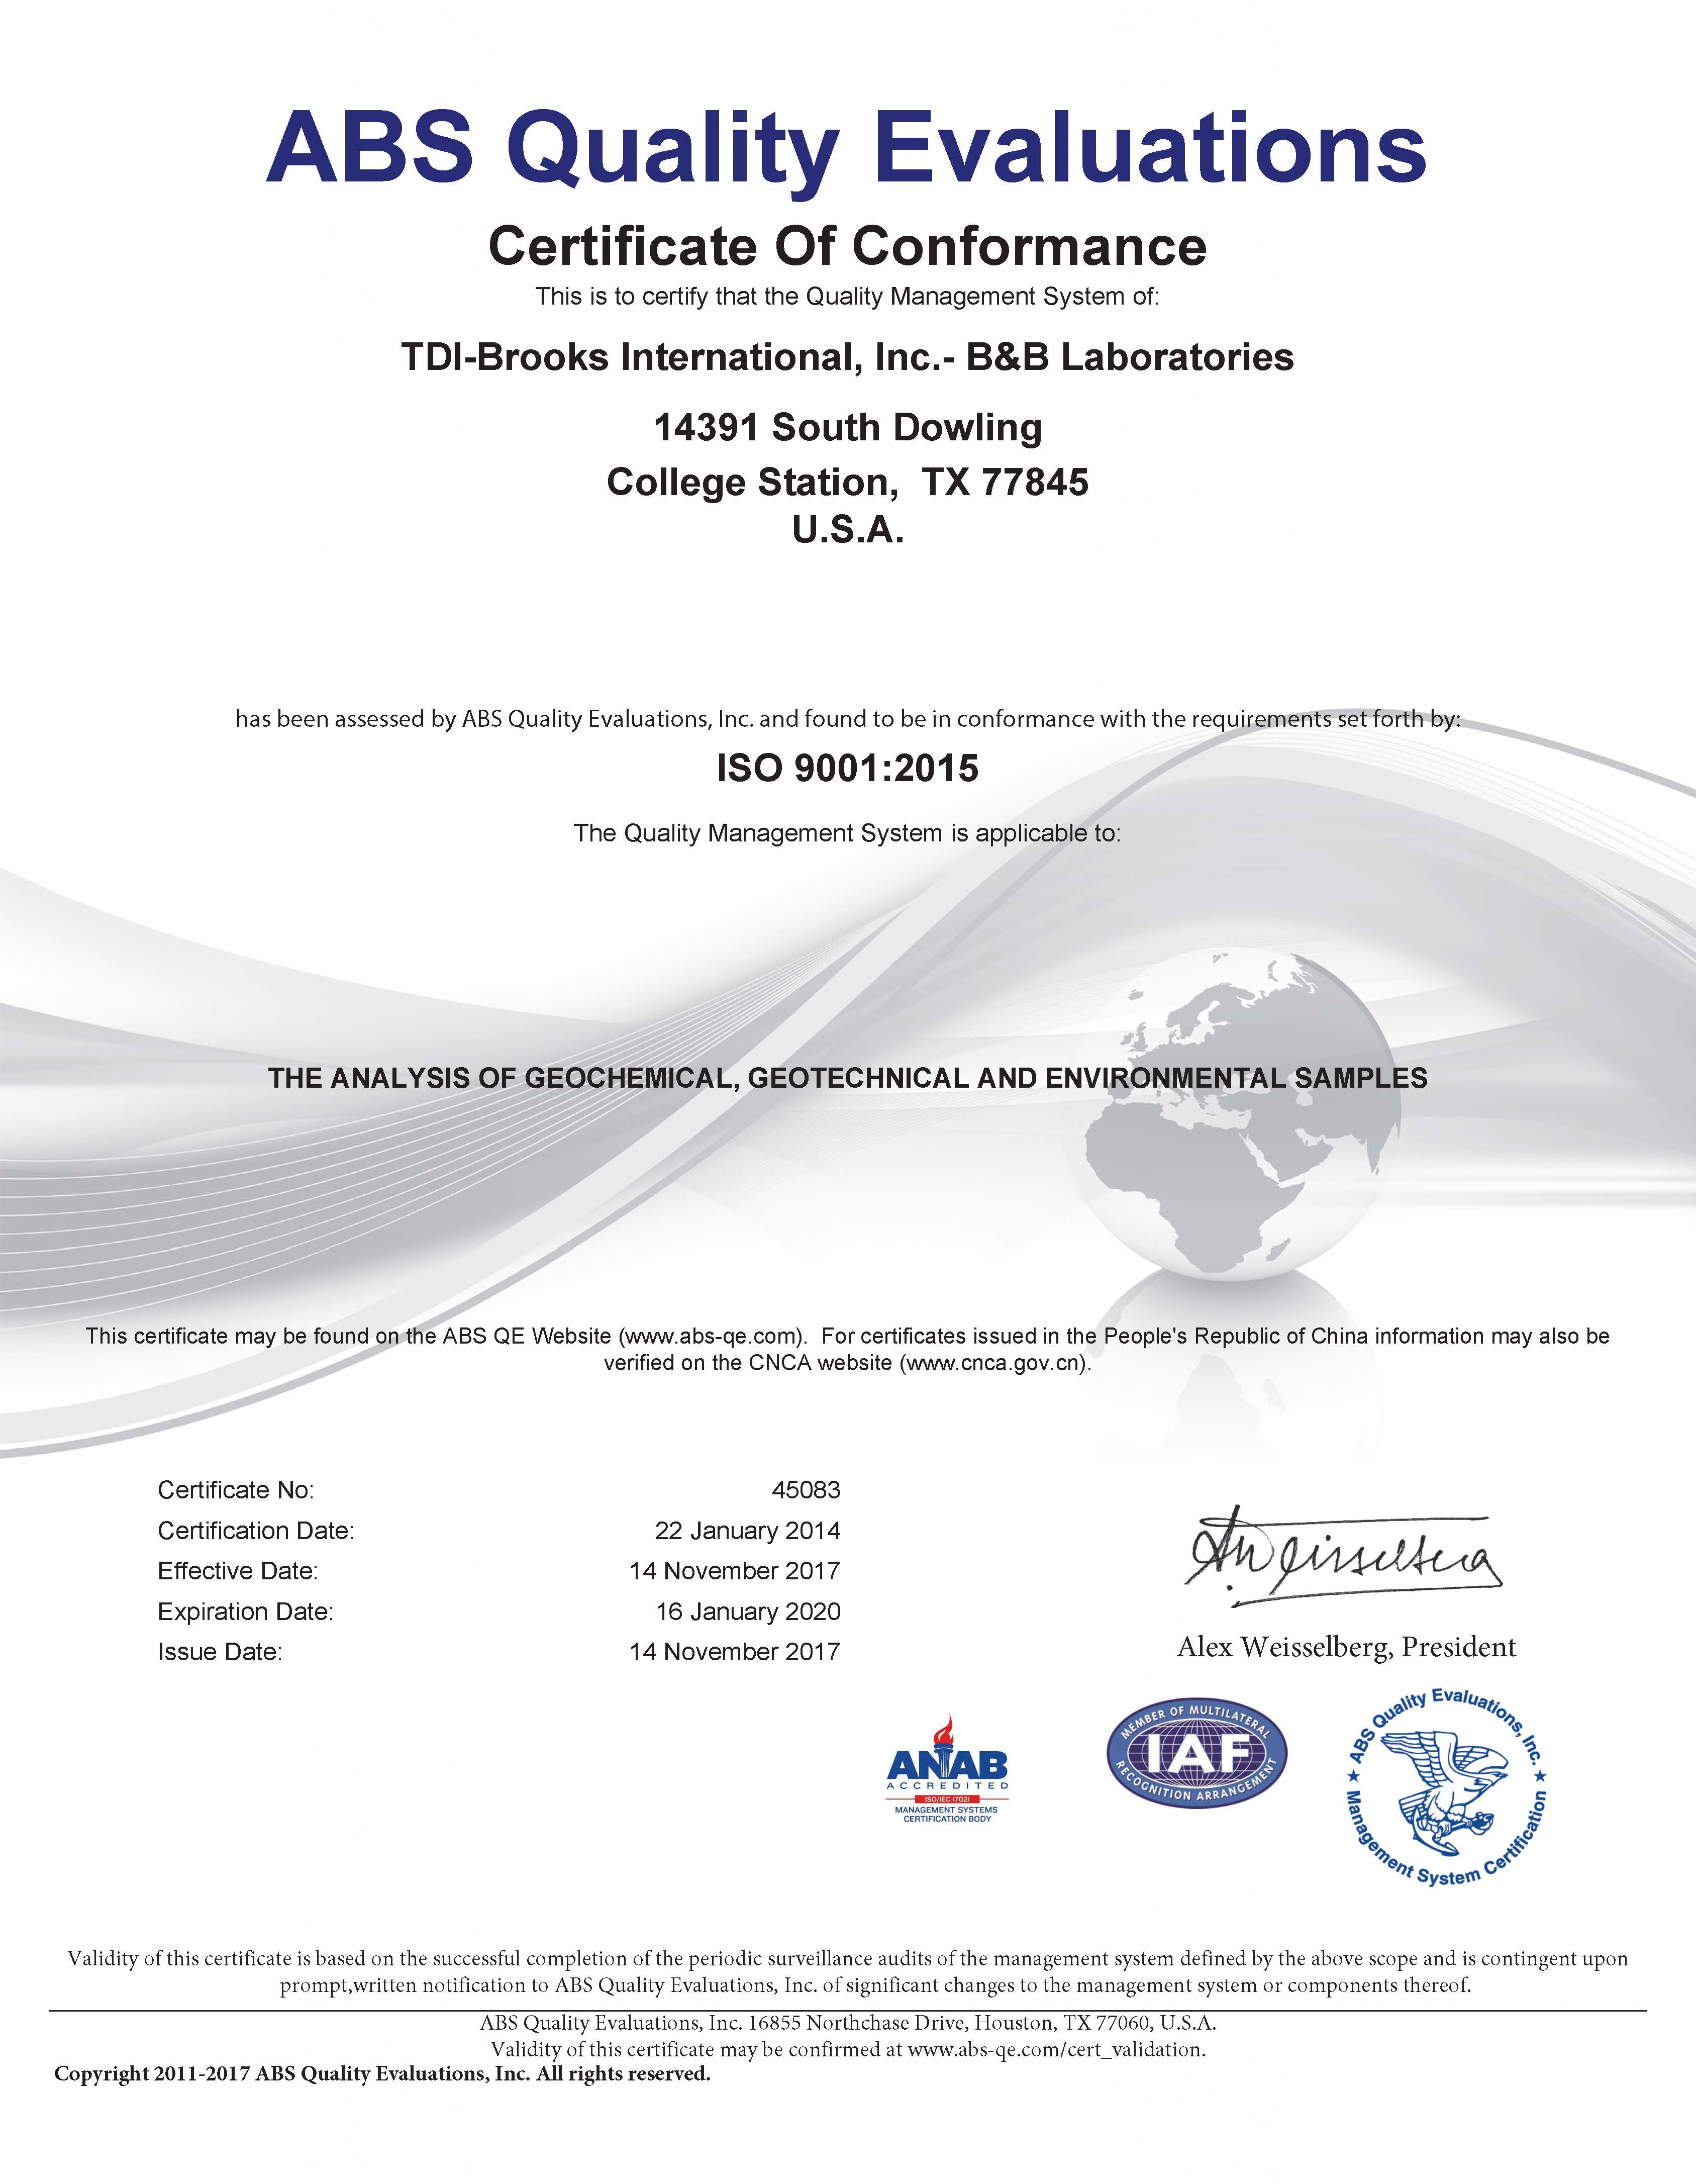 Bb laboratories awarded iso 90012015 certification tdi brooks our decision to work towards iso 90012015 accreditation demonstrates our commitment to providing a high quality and consistent service to our clients and 1betcityfo Gallery